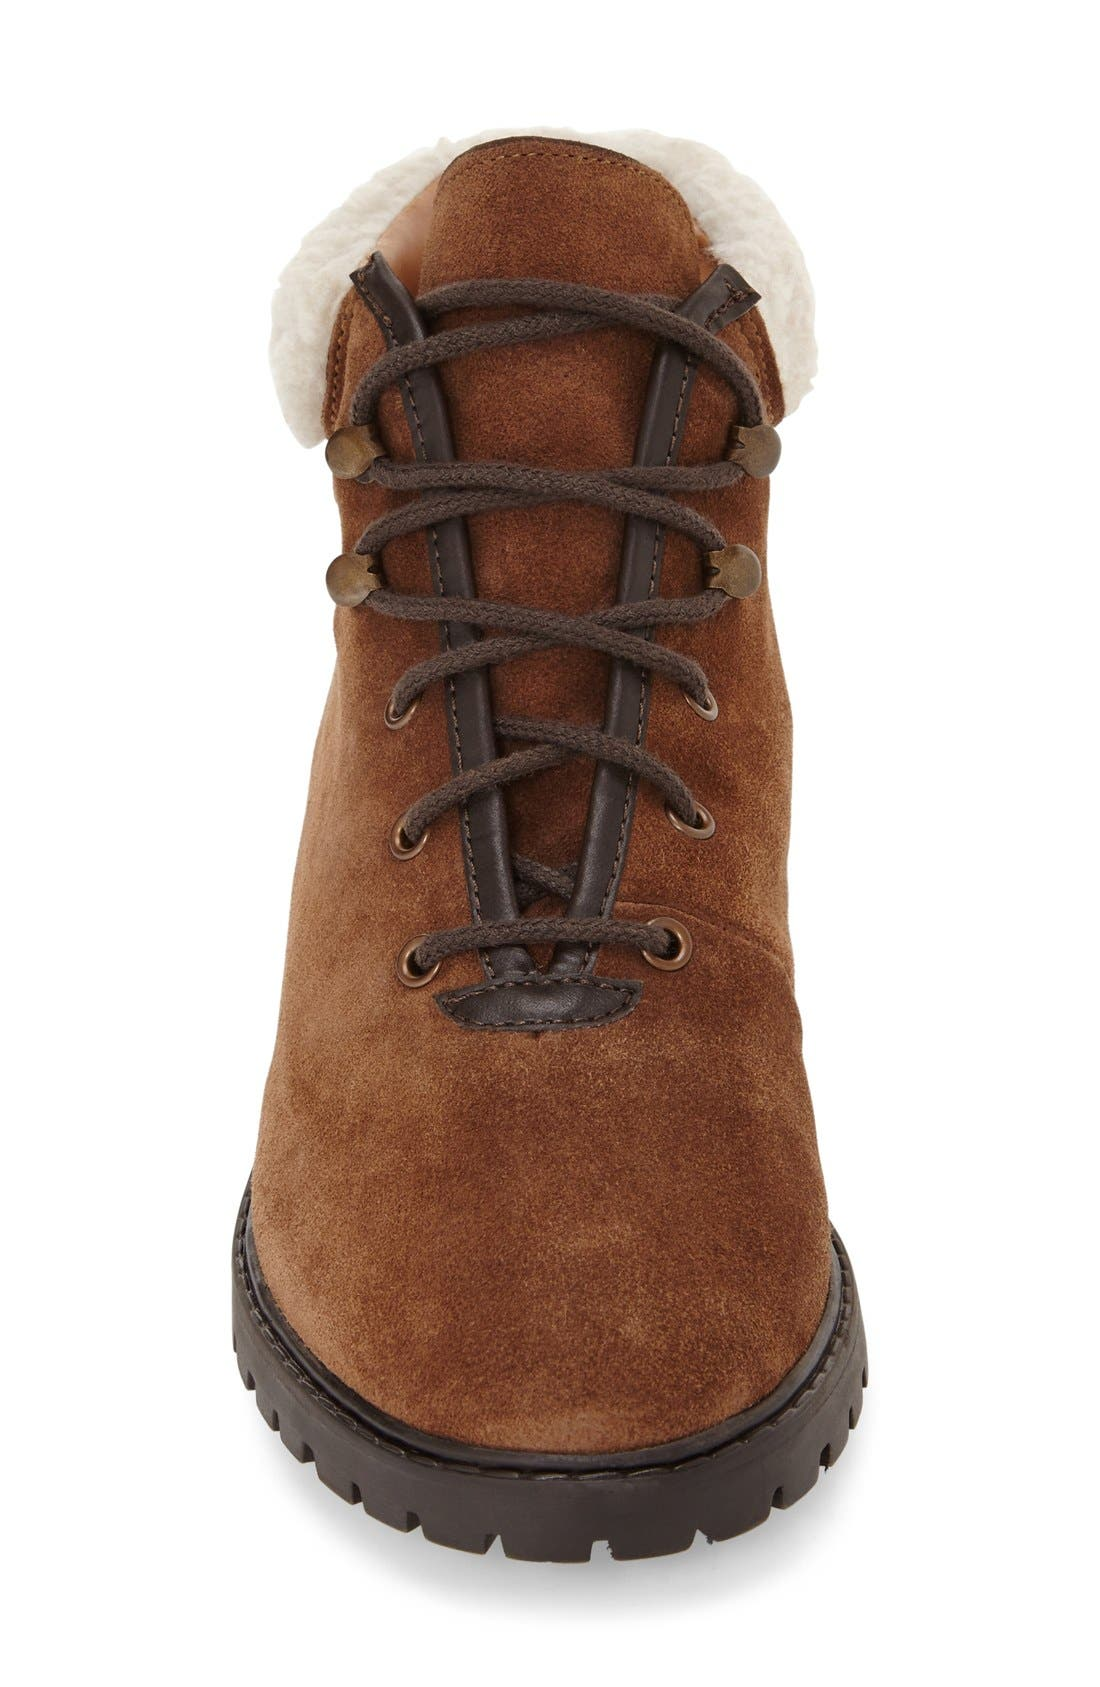 Alternate Image 3  - Topshop Lace-Up Ankle Boots with Faux Fur Trim (Women)